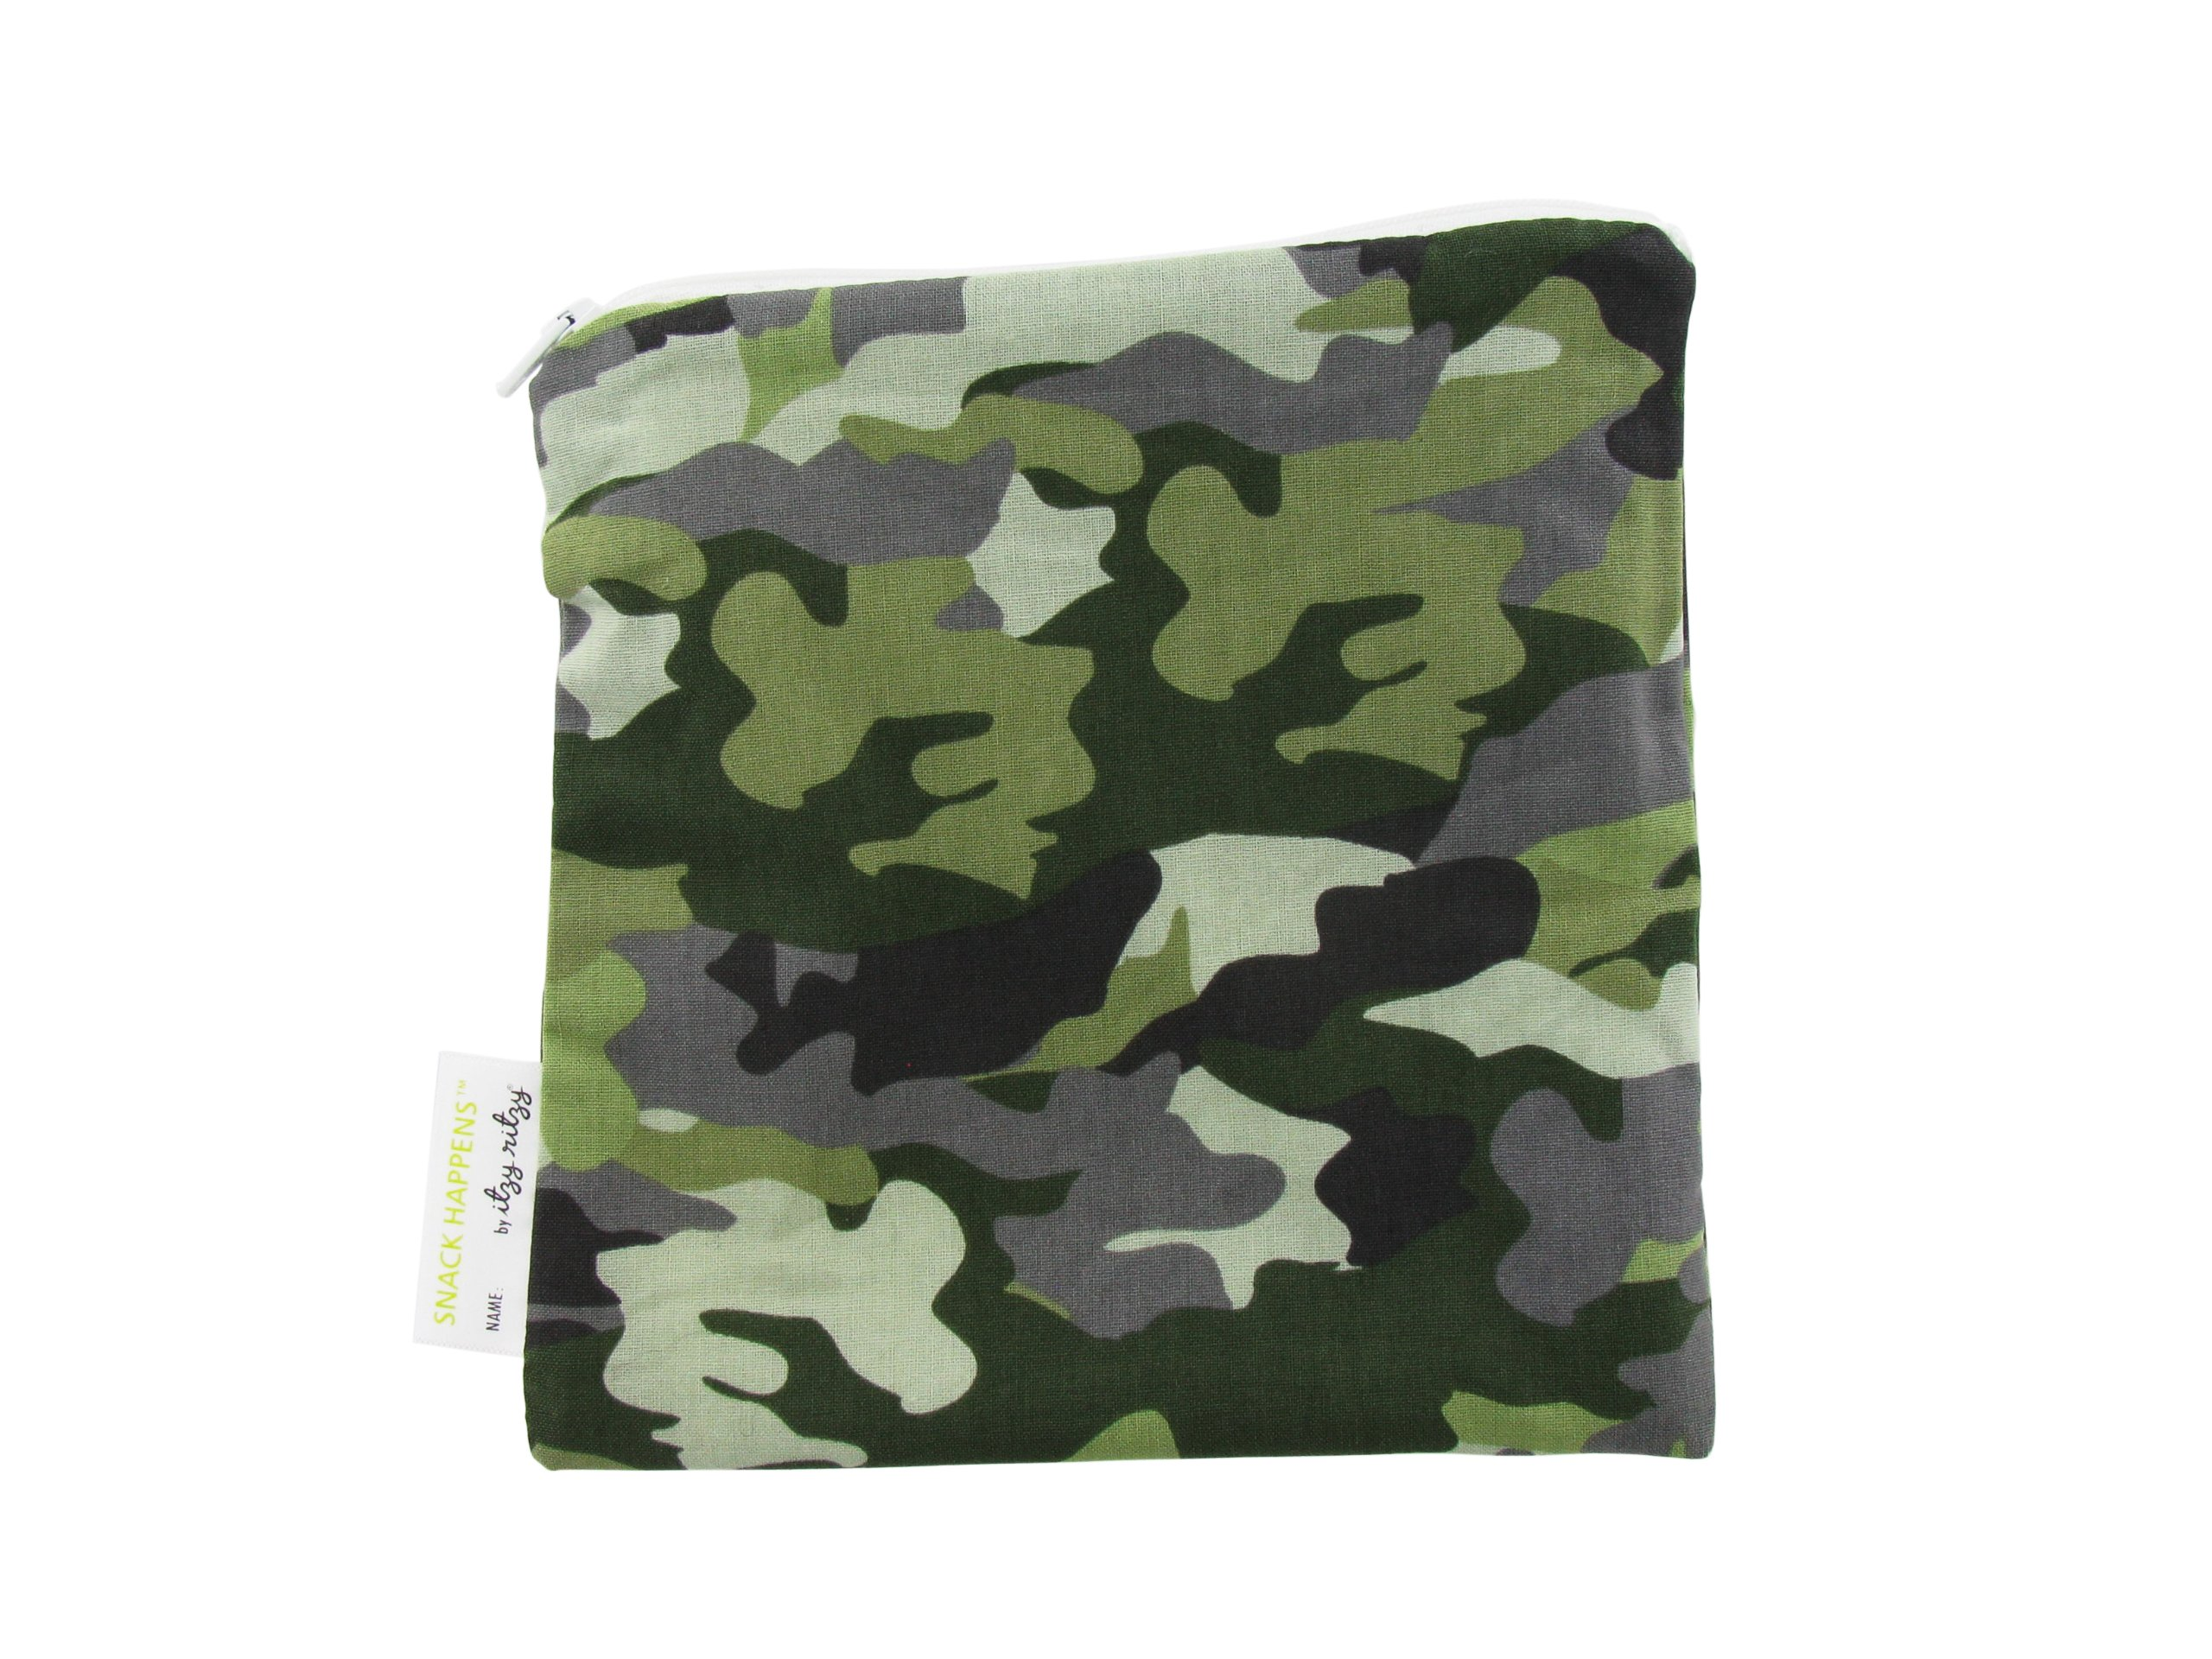 Itzy Ritzy Snack Happens Reusable Snack and Everything Bag, Camo, Regular